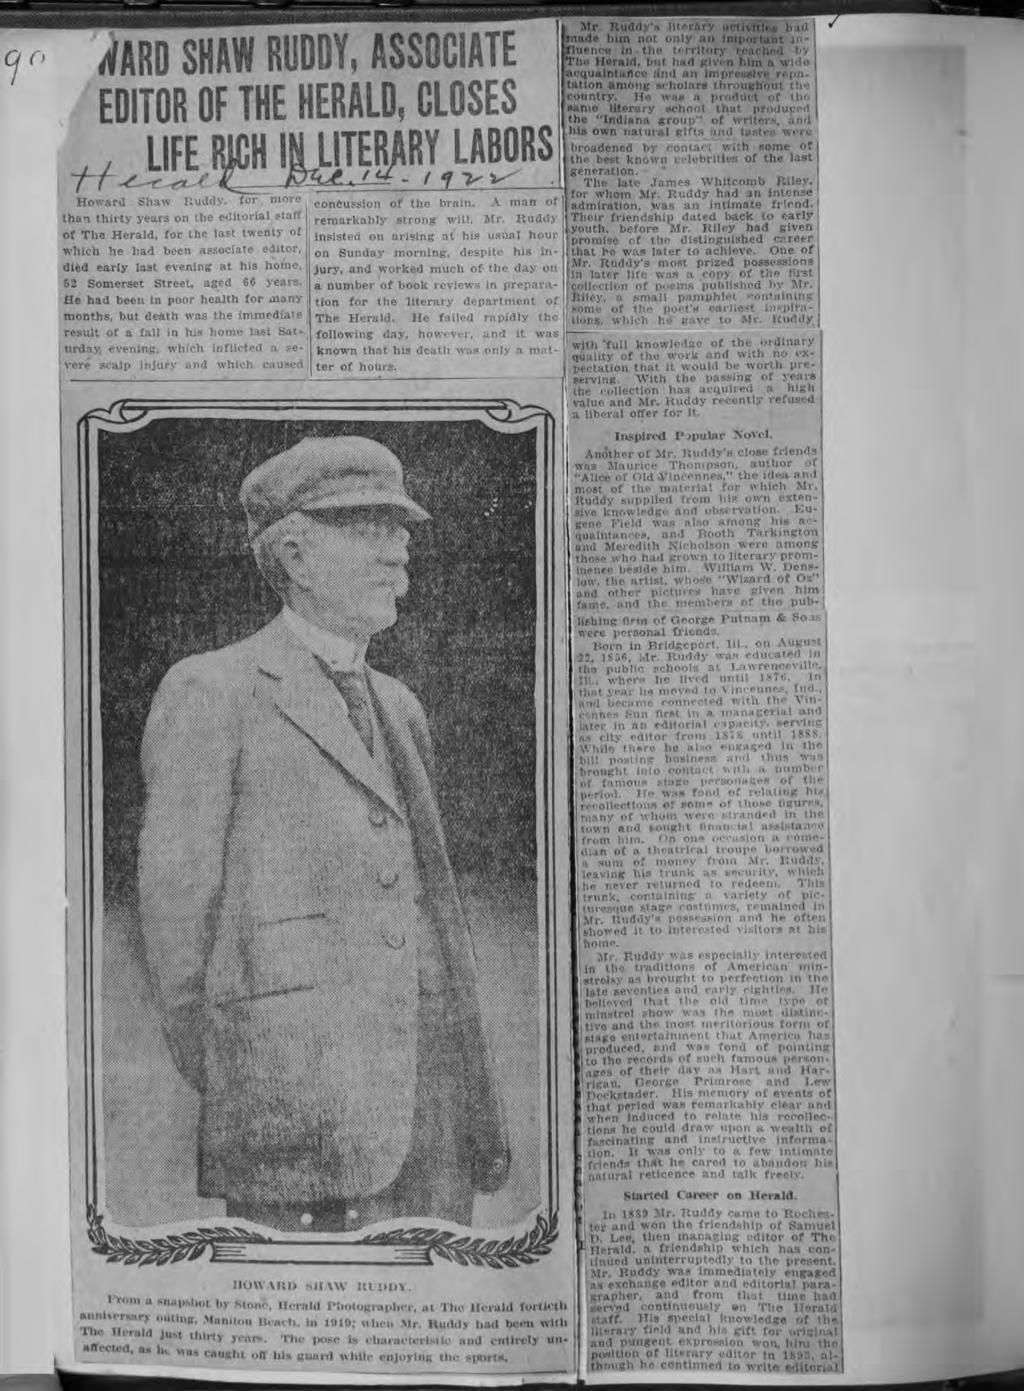 whch? o H- WARD SHAW RUDDY, ASSOCATE EDTOR OF THE HERALD, CLOSES LFE RCH N LTERARY LABORS Howard Shaw Ruddy, for more, than thrty years on the edtoral staff of The Herald, for the last twenty of whch